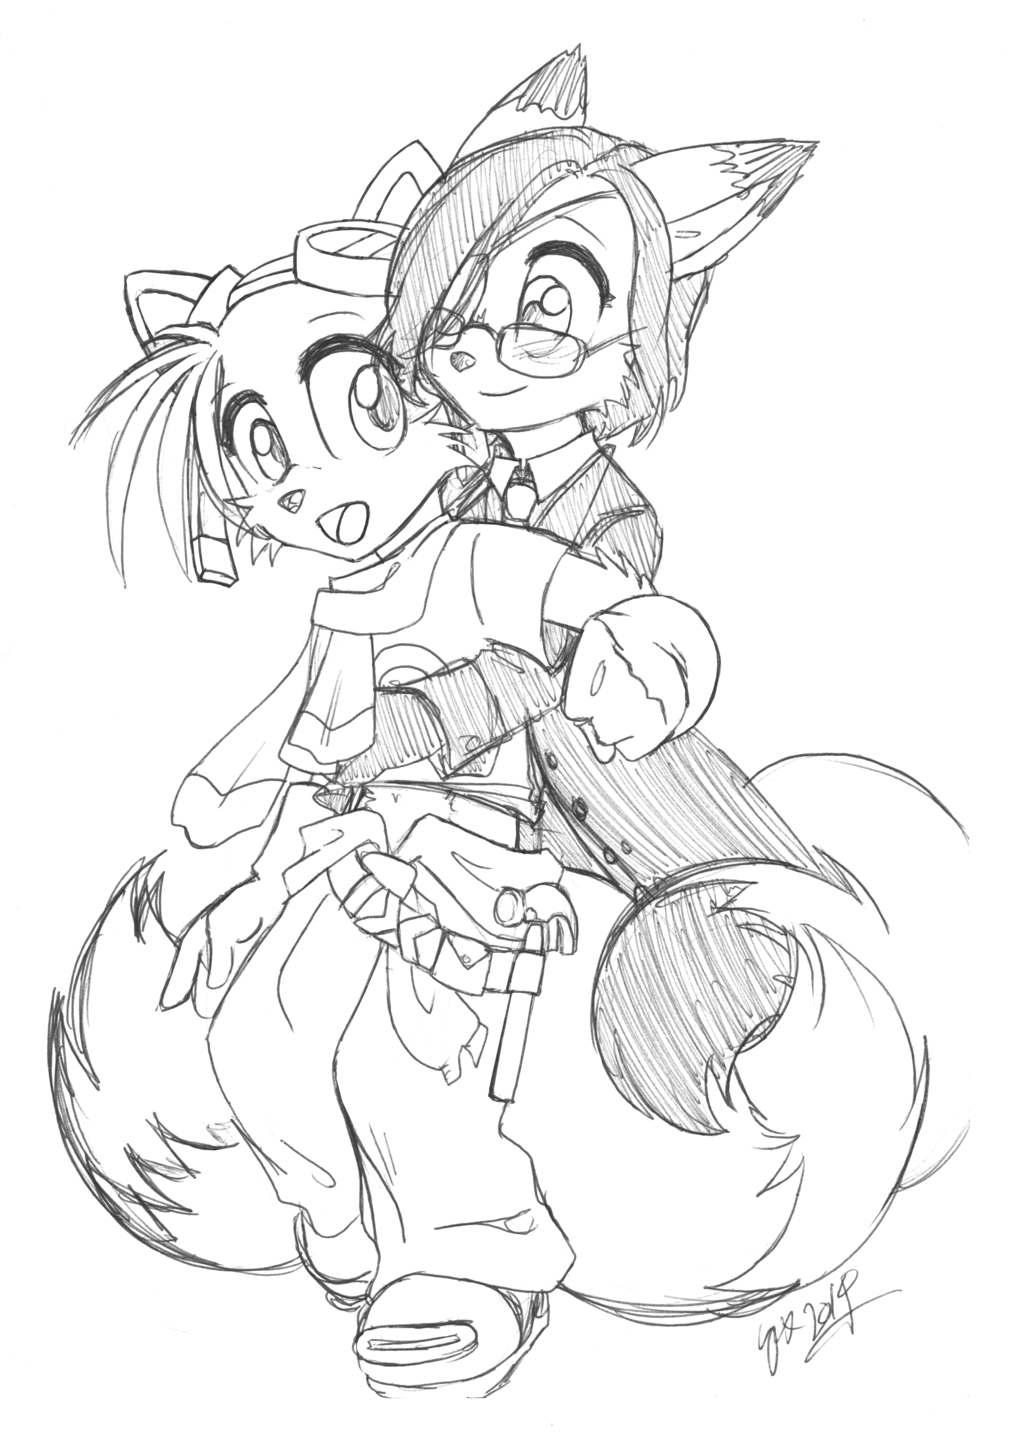 Most recent image: Tails x Sammy - Hug!